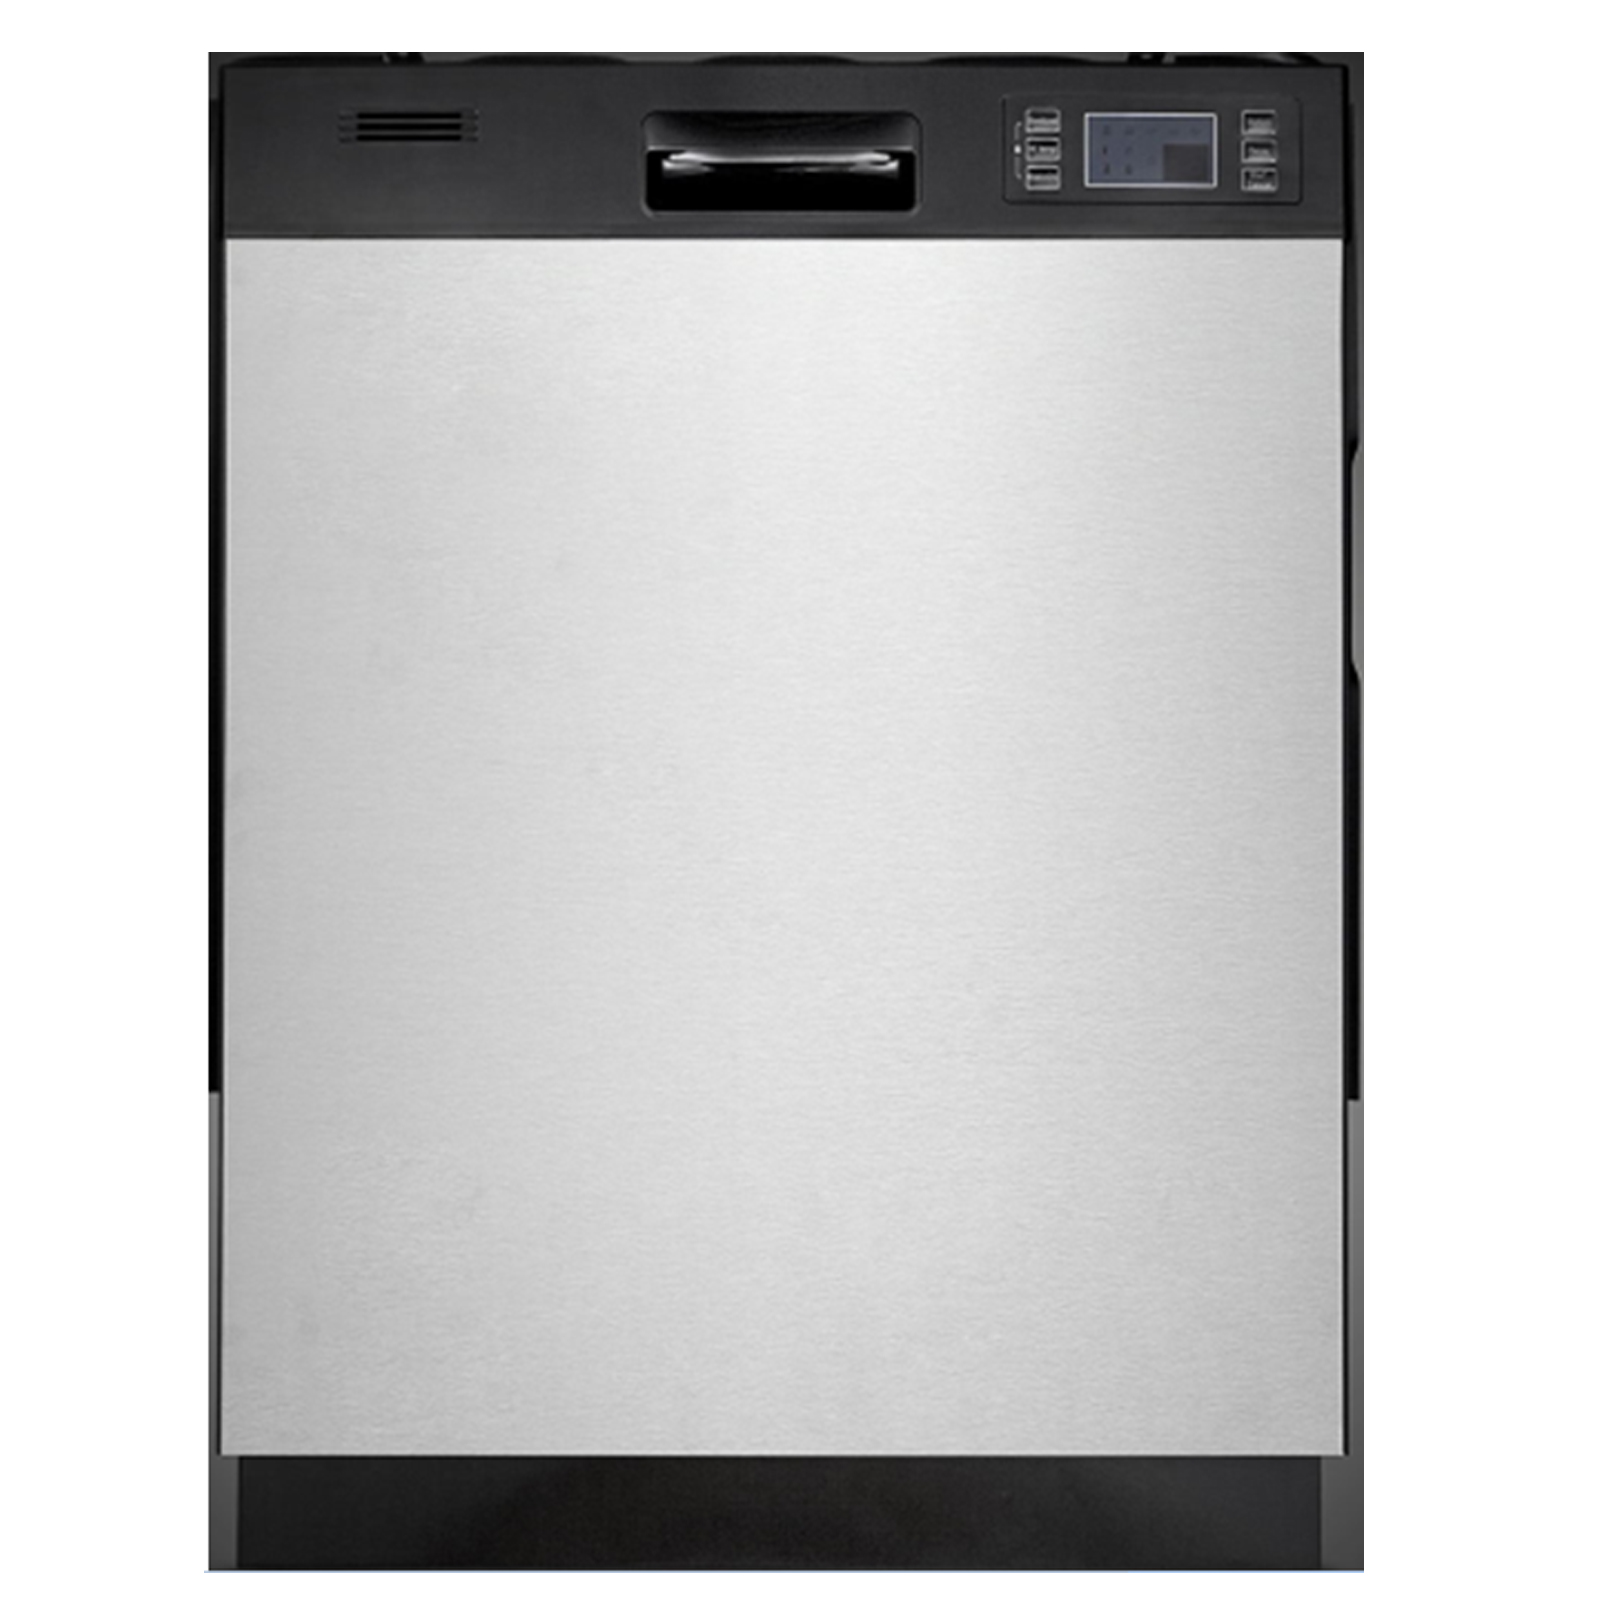 SB 80-9373 - Dishwasher- Built-in/ADA 10 Place Setting